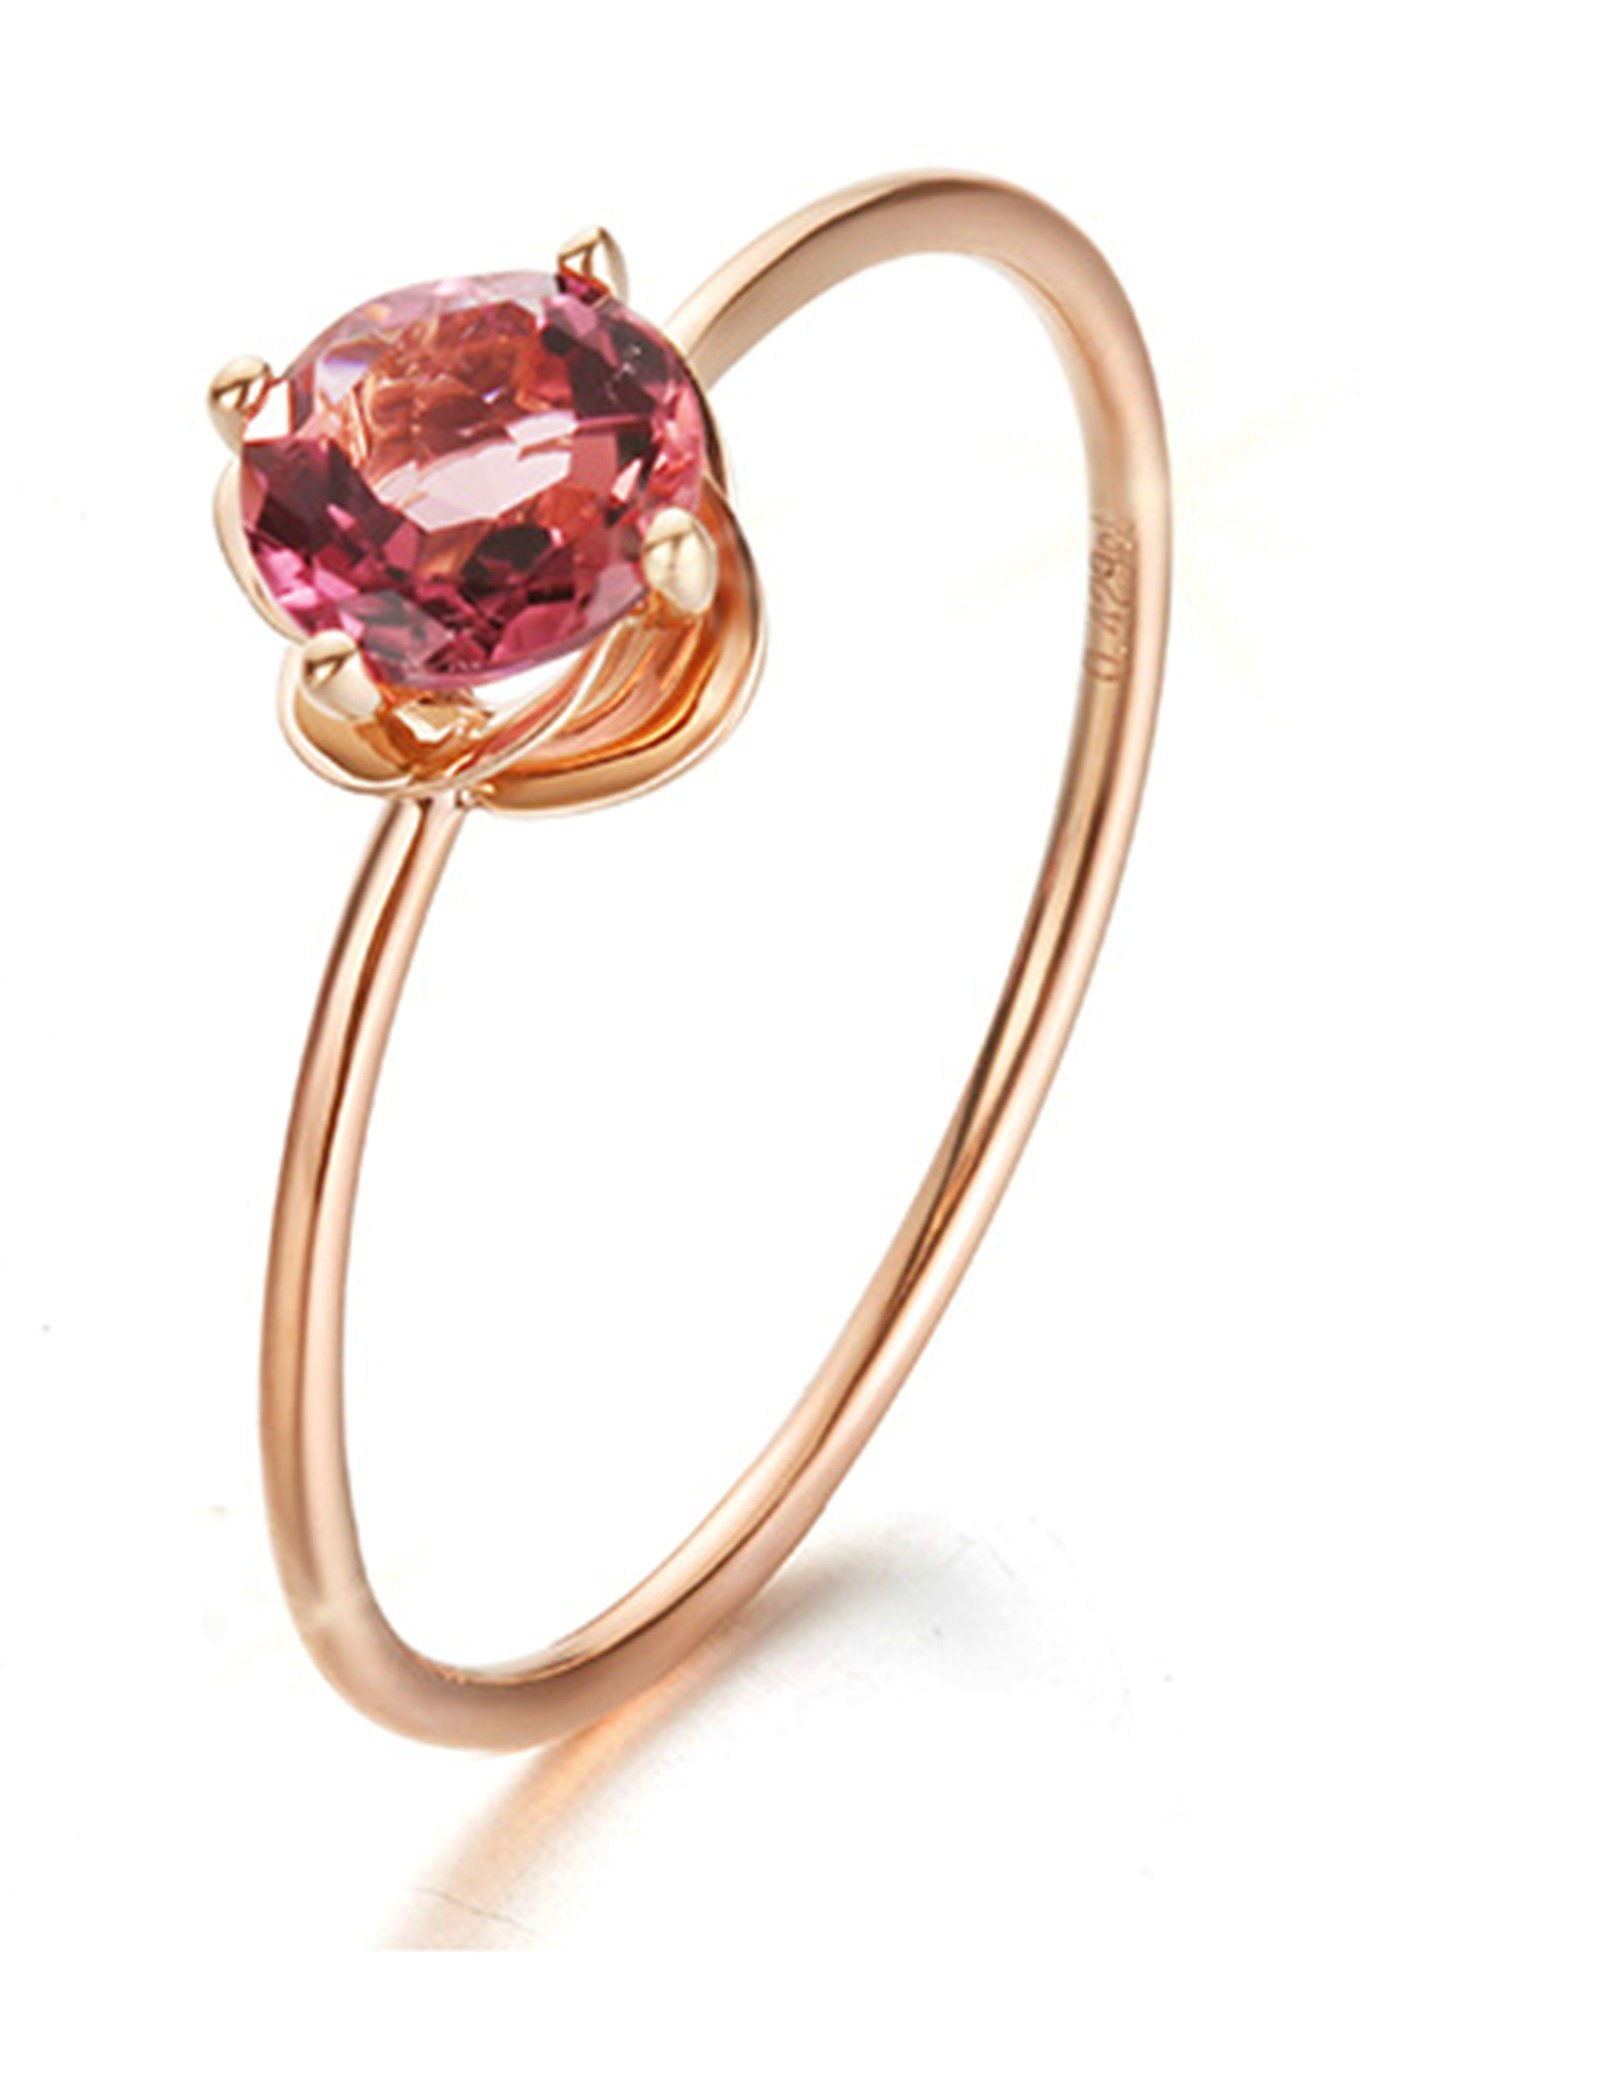 Gnzoe Rose Gold Women Wedding Rings Solitaire Engagement Rings Flowers Rose Gold with Rose 0.528ct Diamond Size 6 by Gnzoe